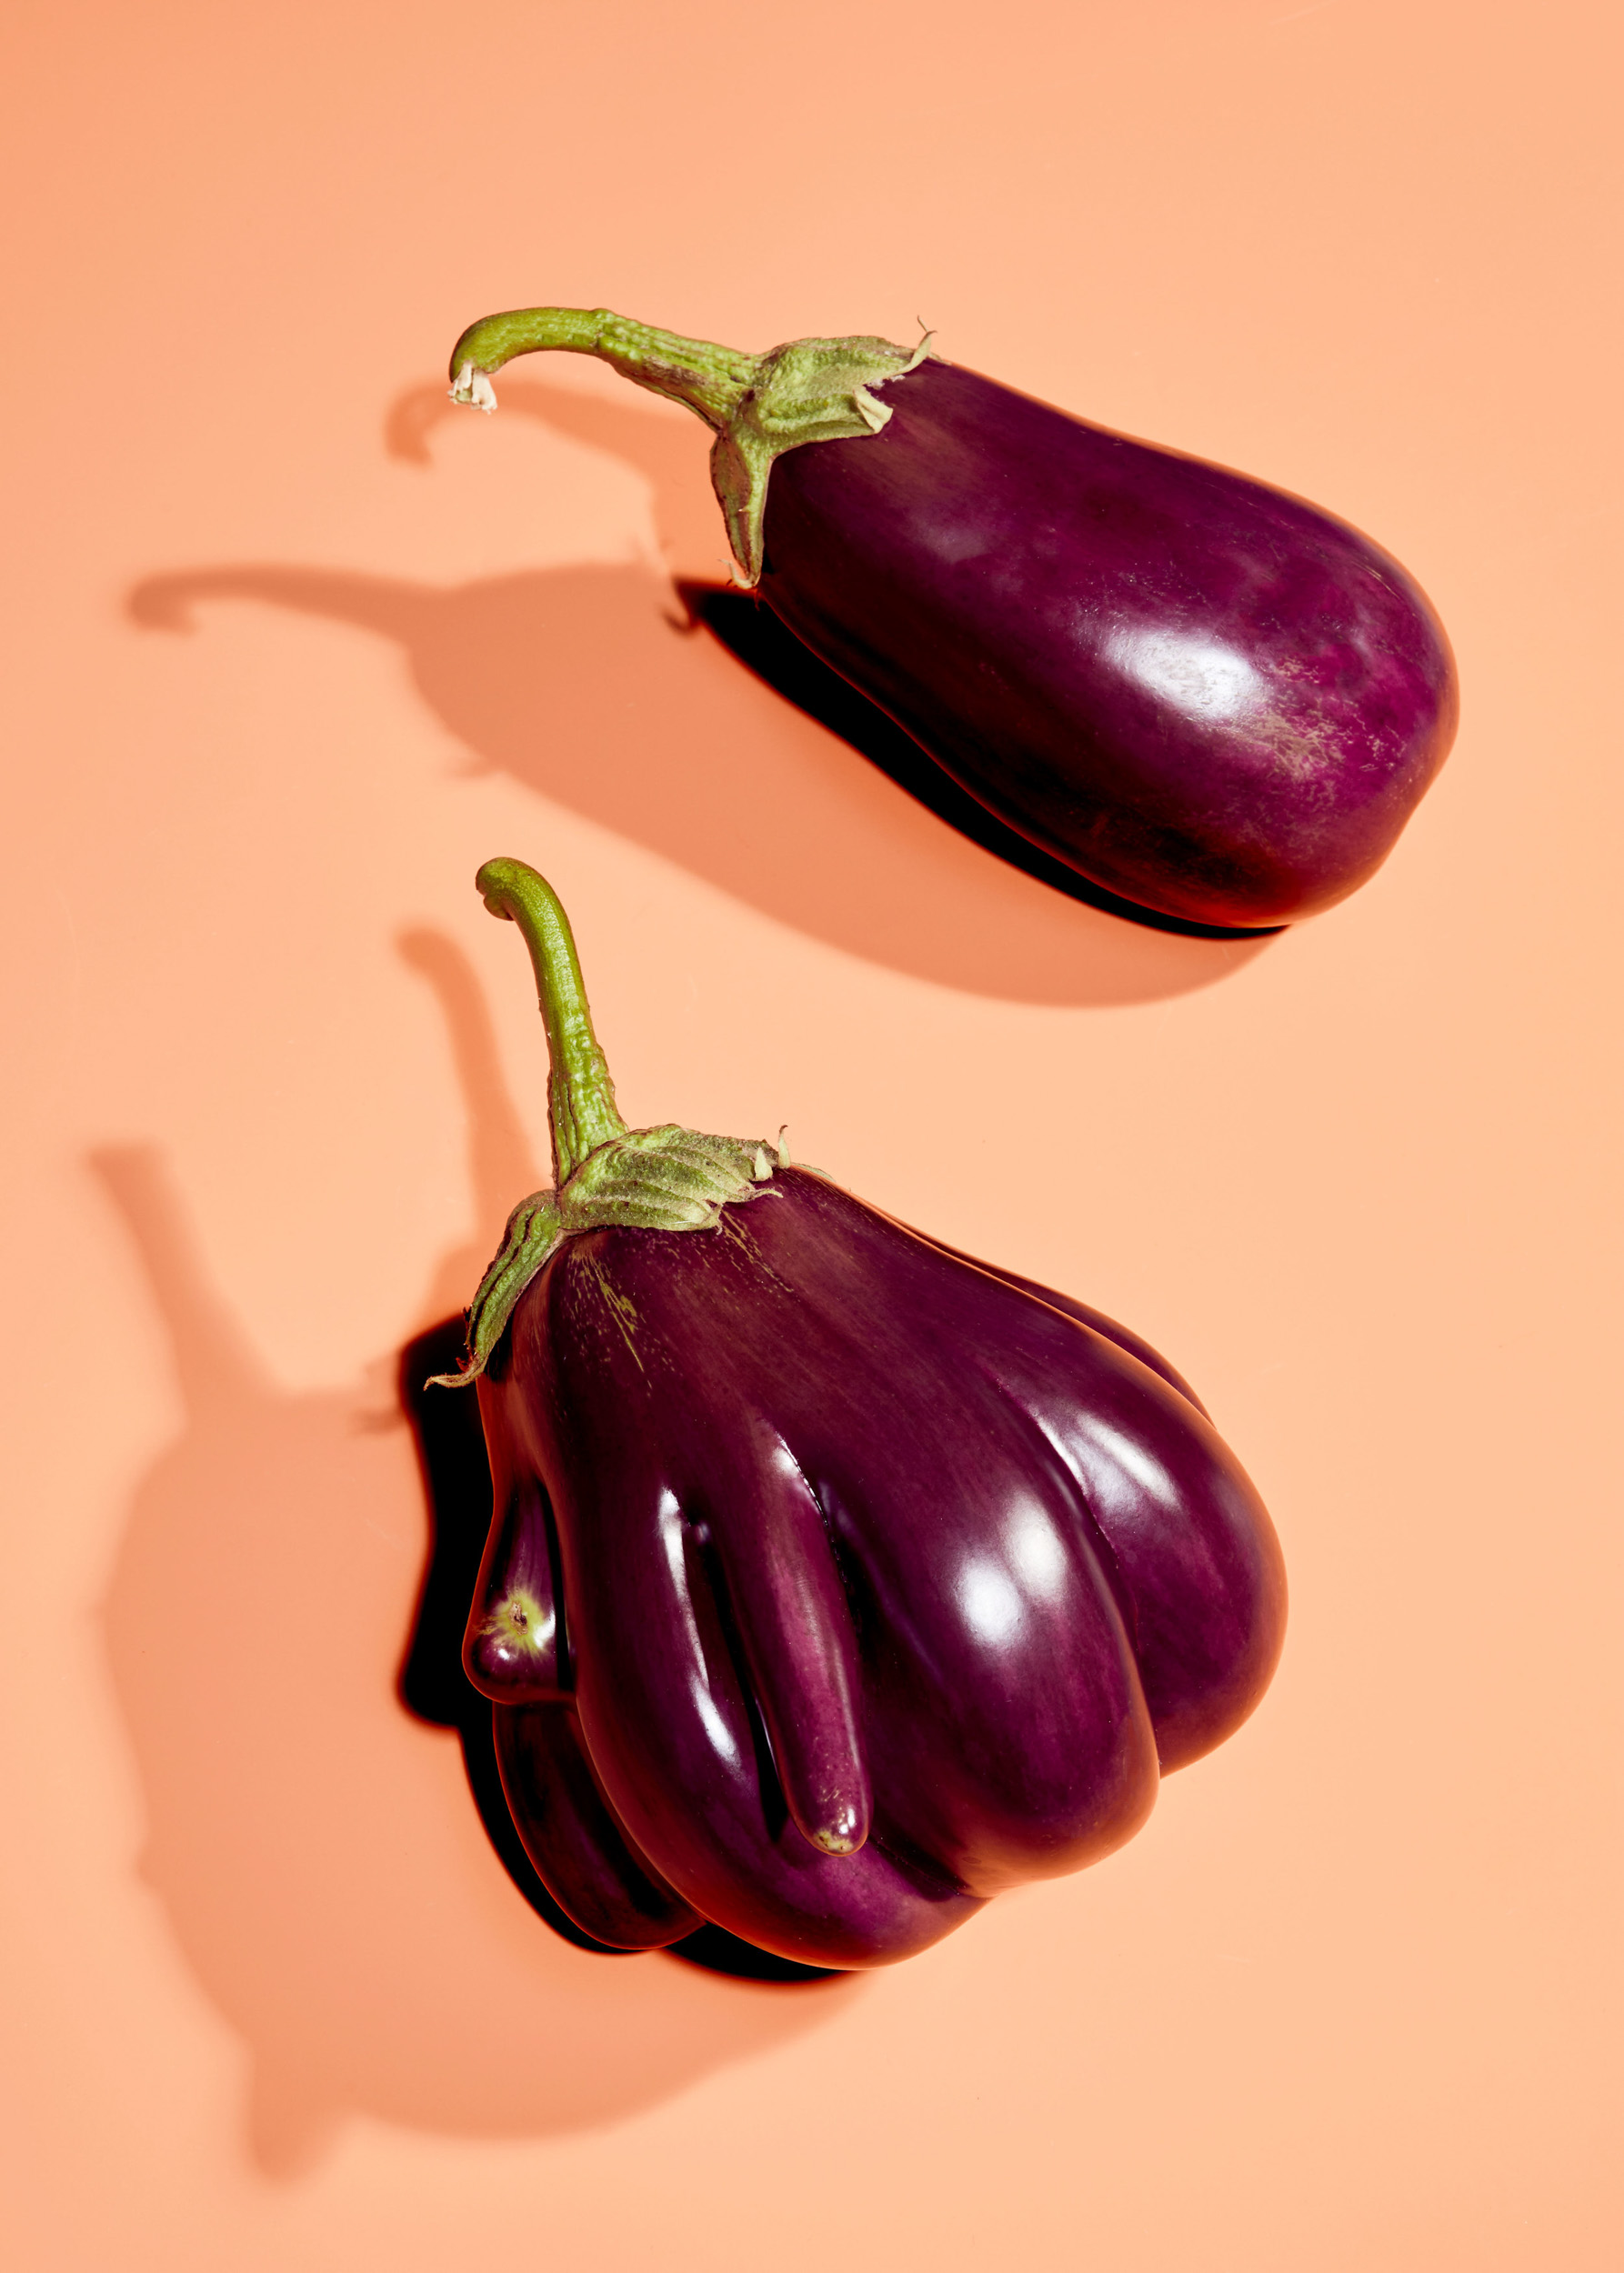 dominic-perri-new-work-eggplant